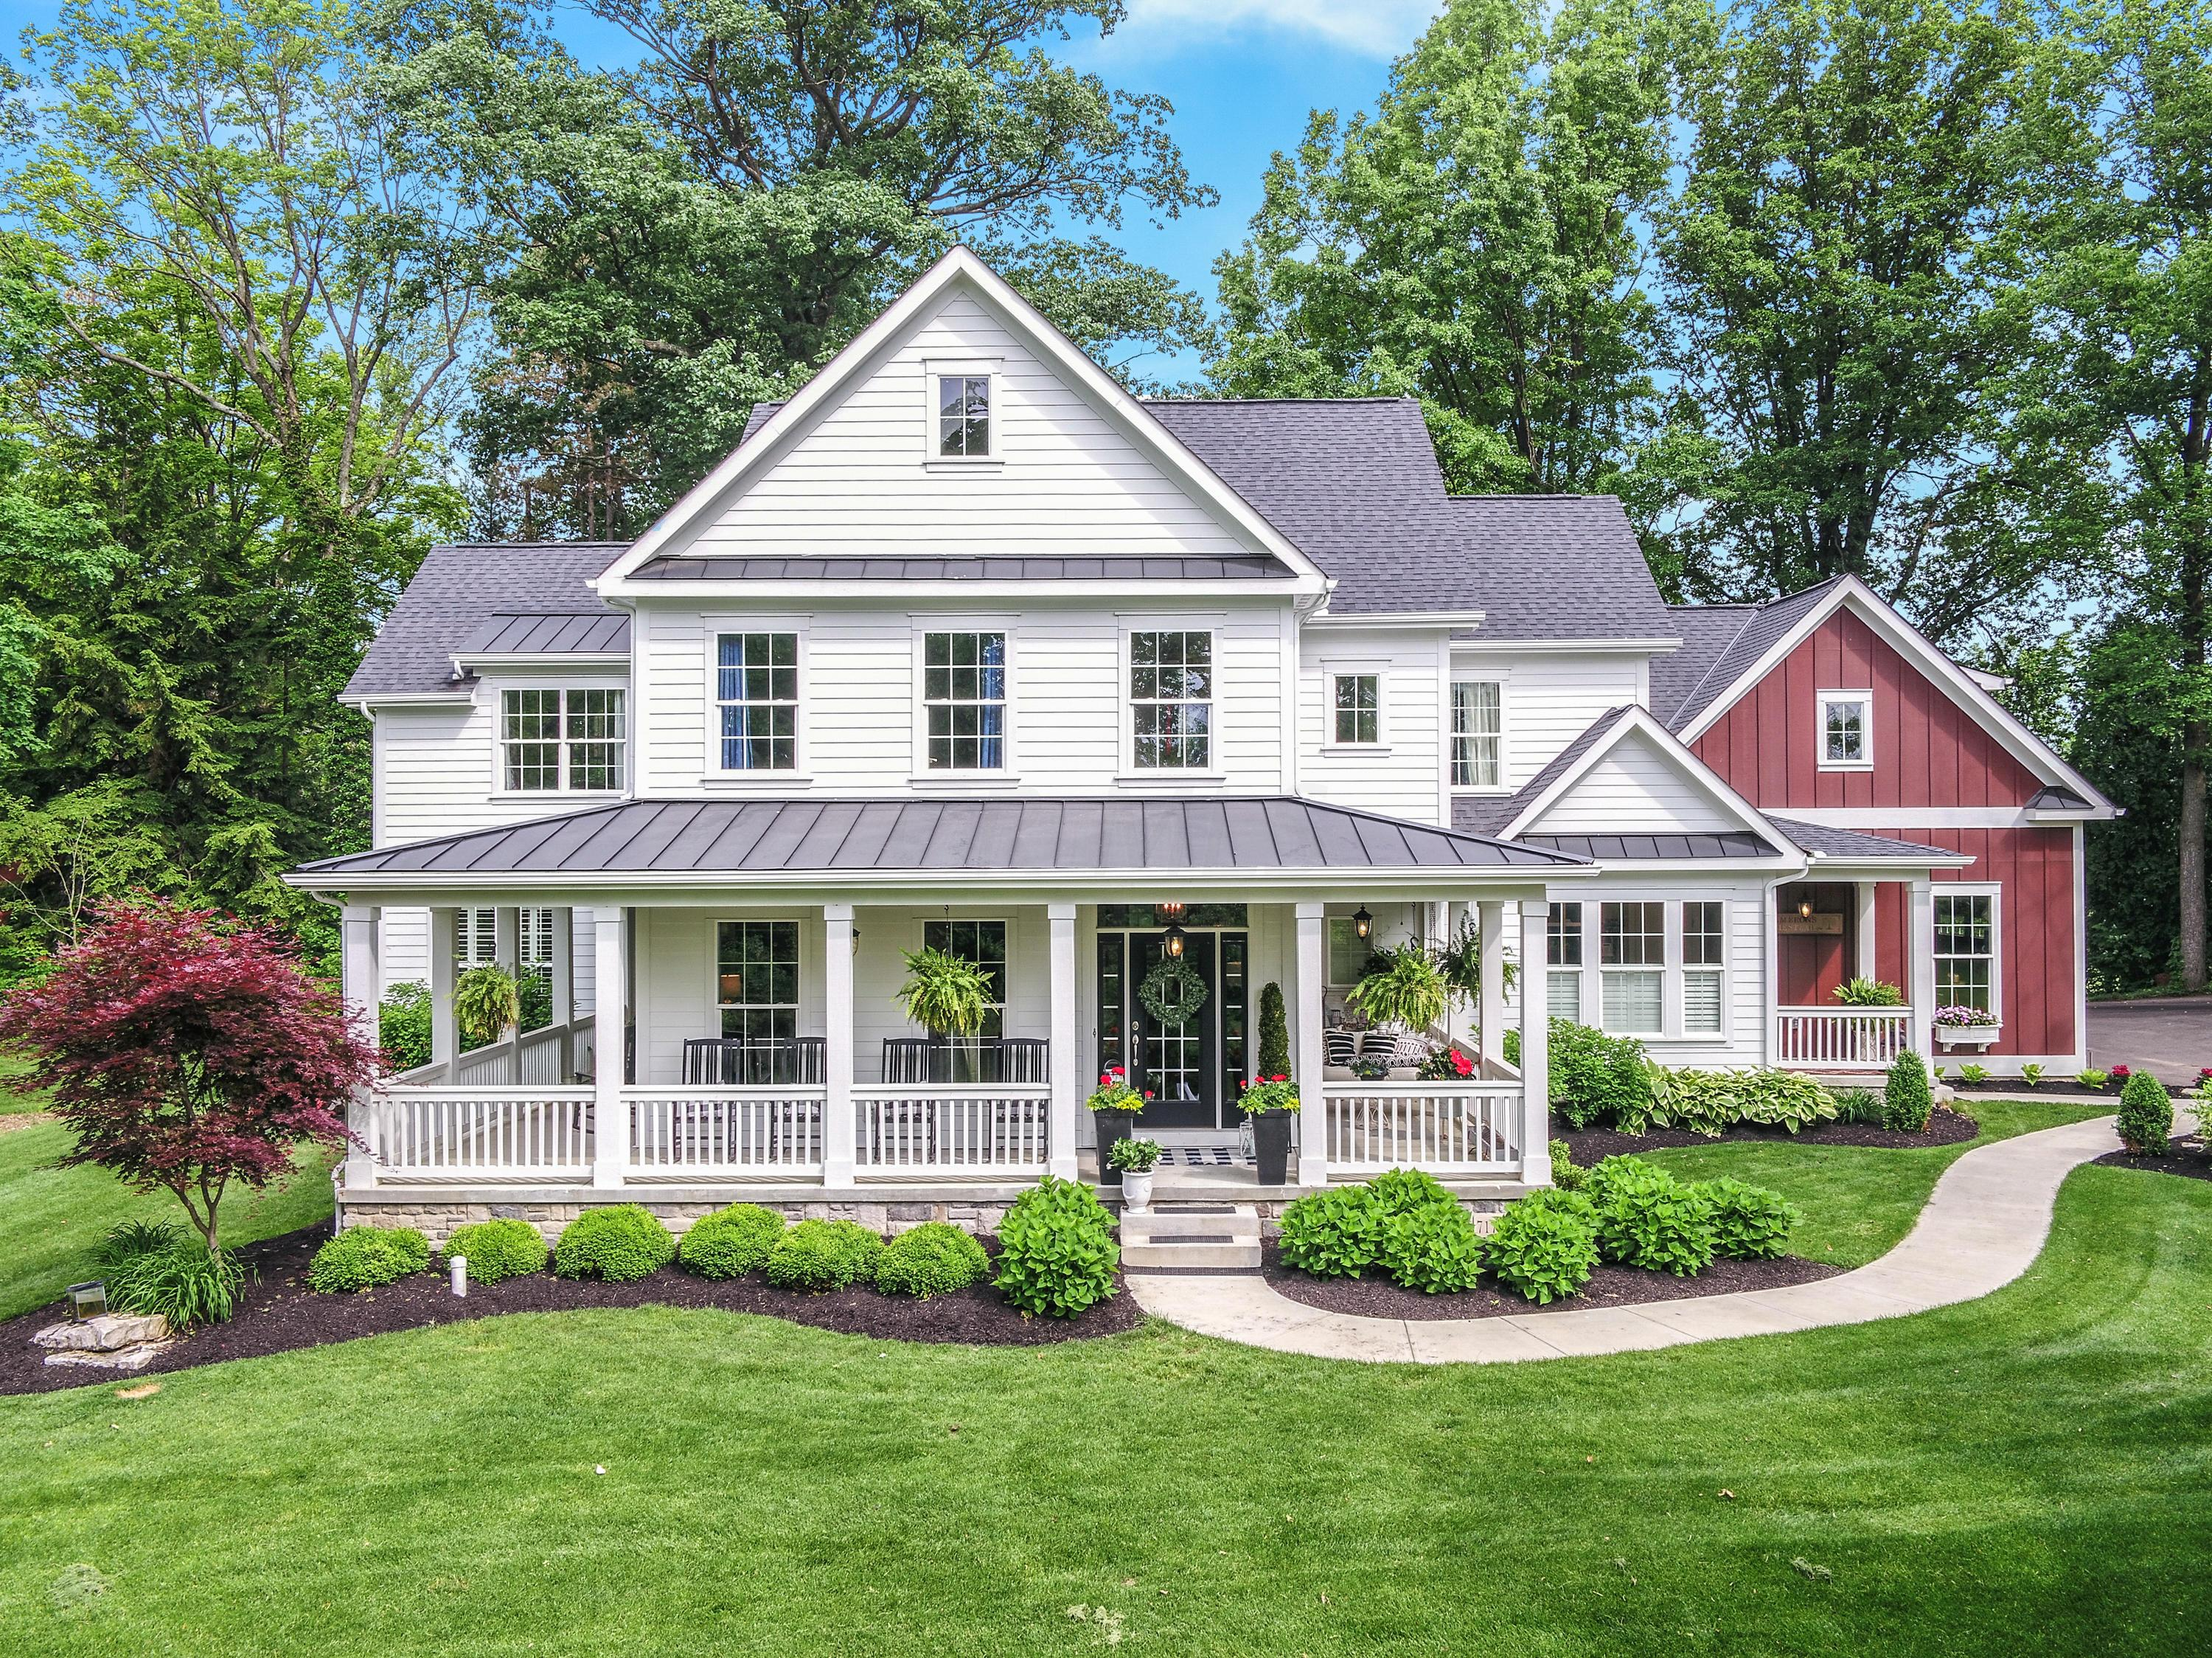 Photo of 7176 Worthington Road, Westerville, OH 43082